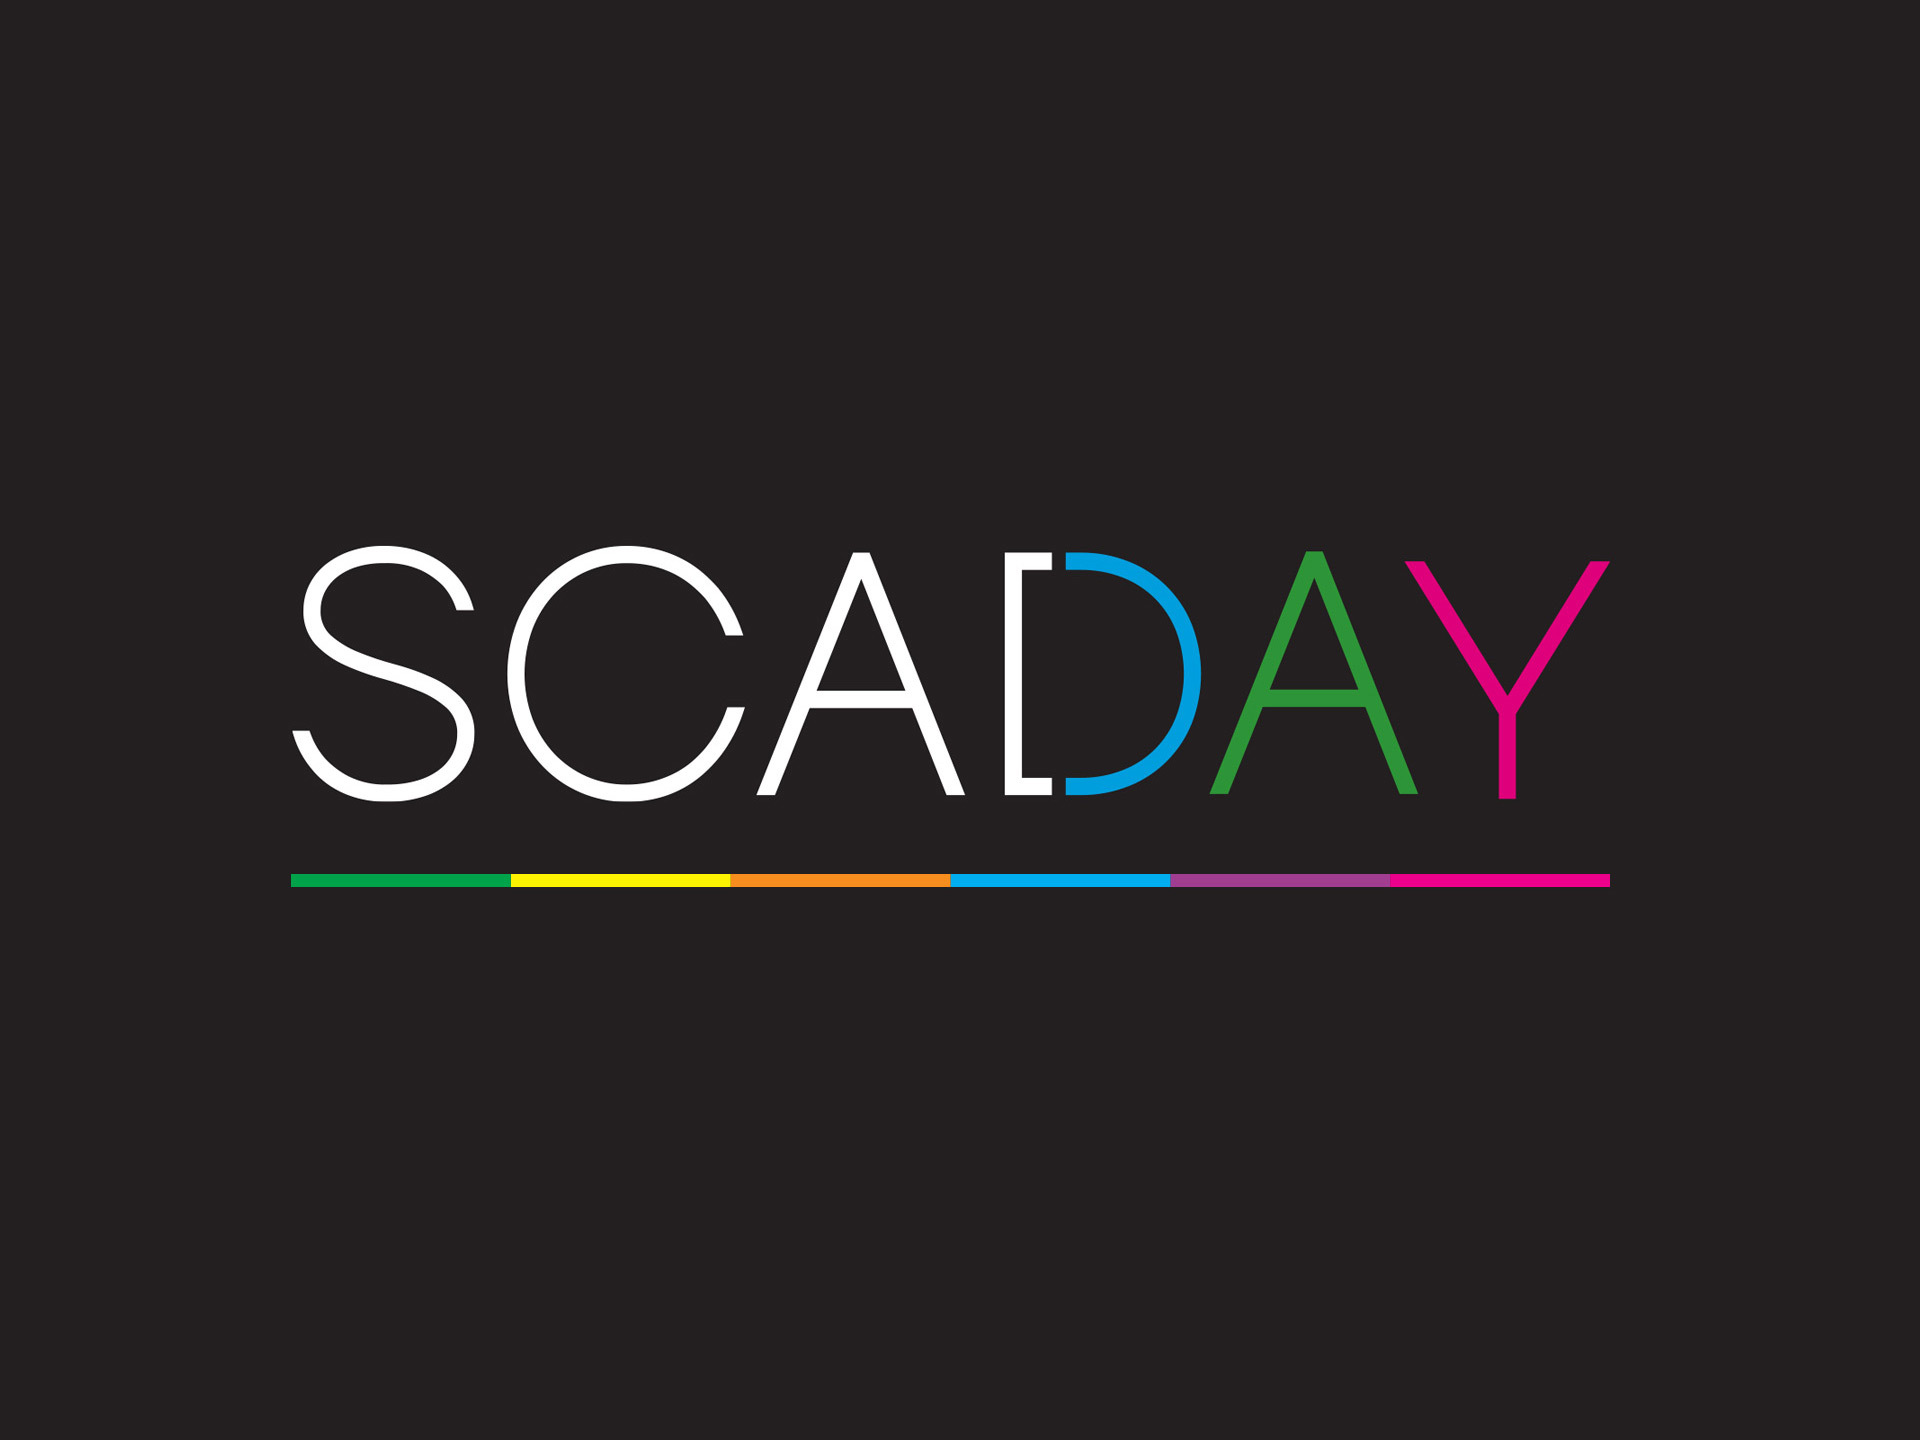 SCAD Day 2021 logo